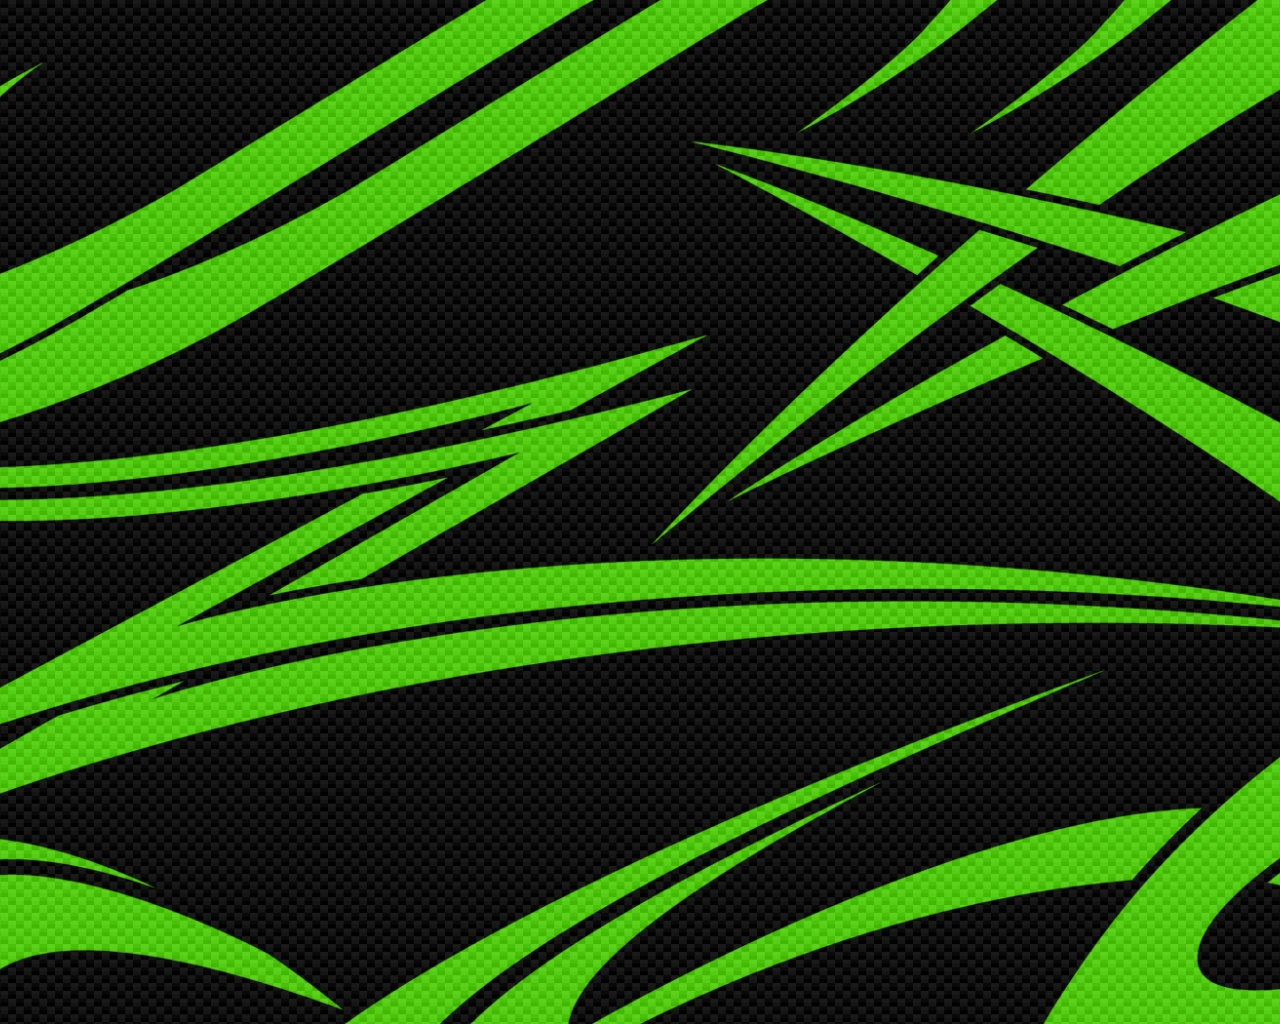 Green And Black Images 2 Cool Wallpaper - Hdblackwallpaper.com  Green And Black...